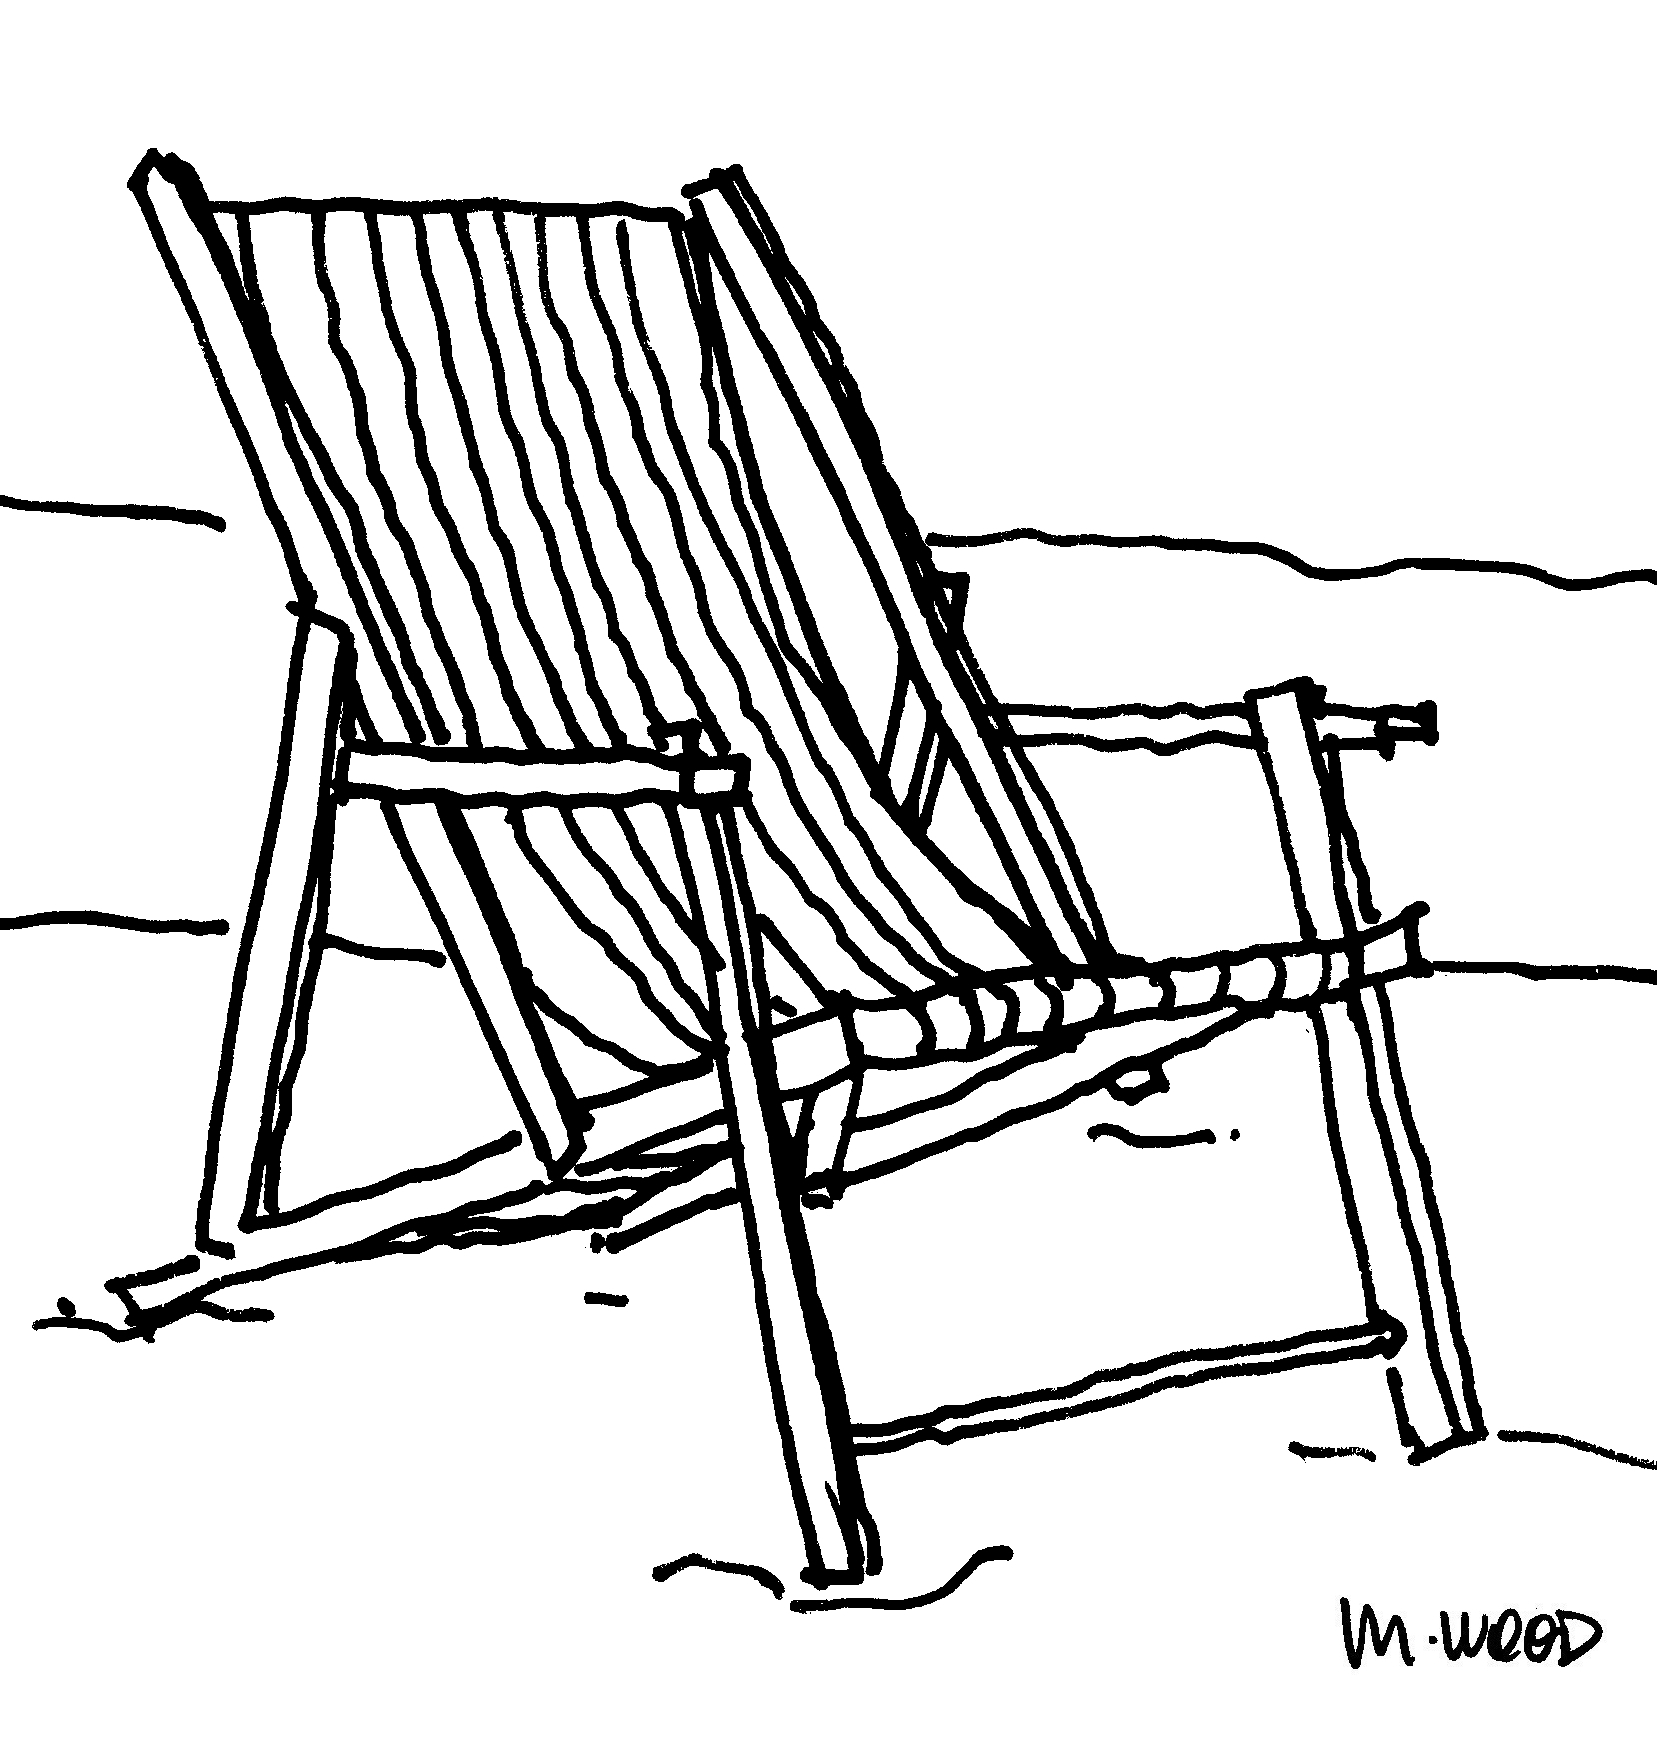 Foldable Wooden Beach Chair Plans Diy Free Plans Download Adirondack Rocking Chair Plans